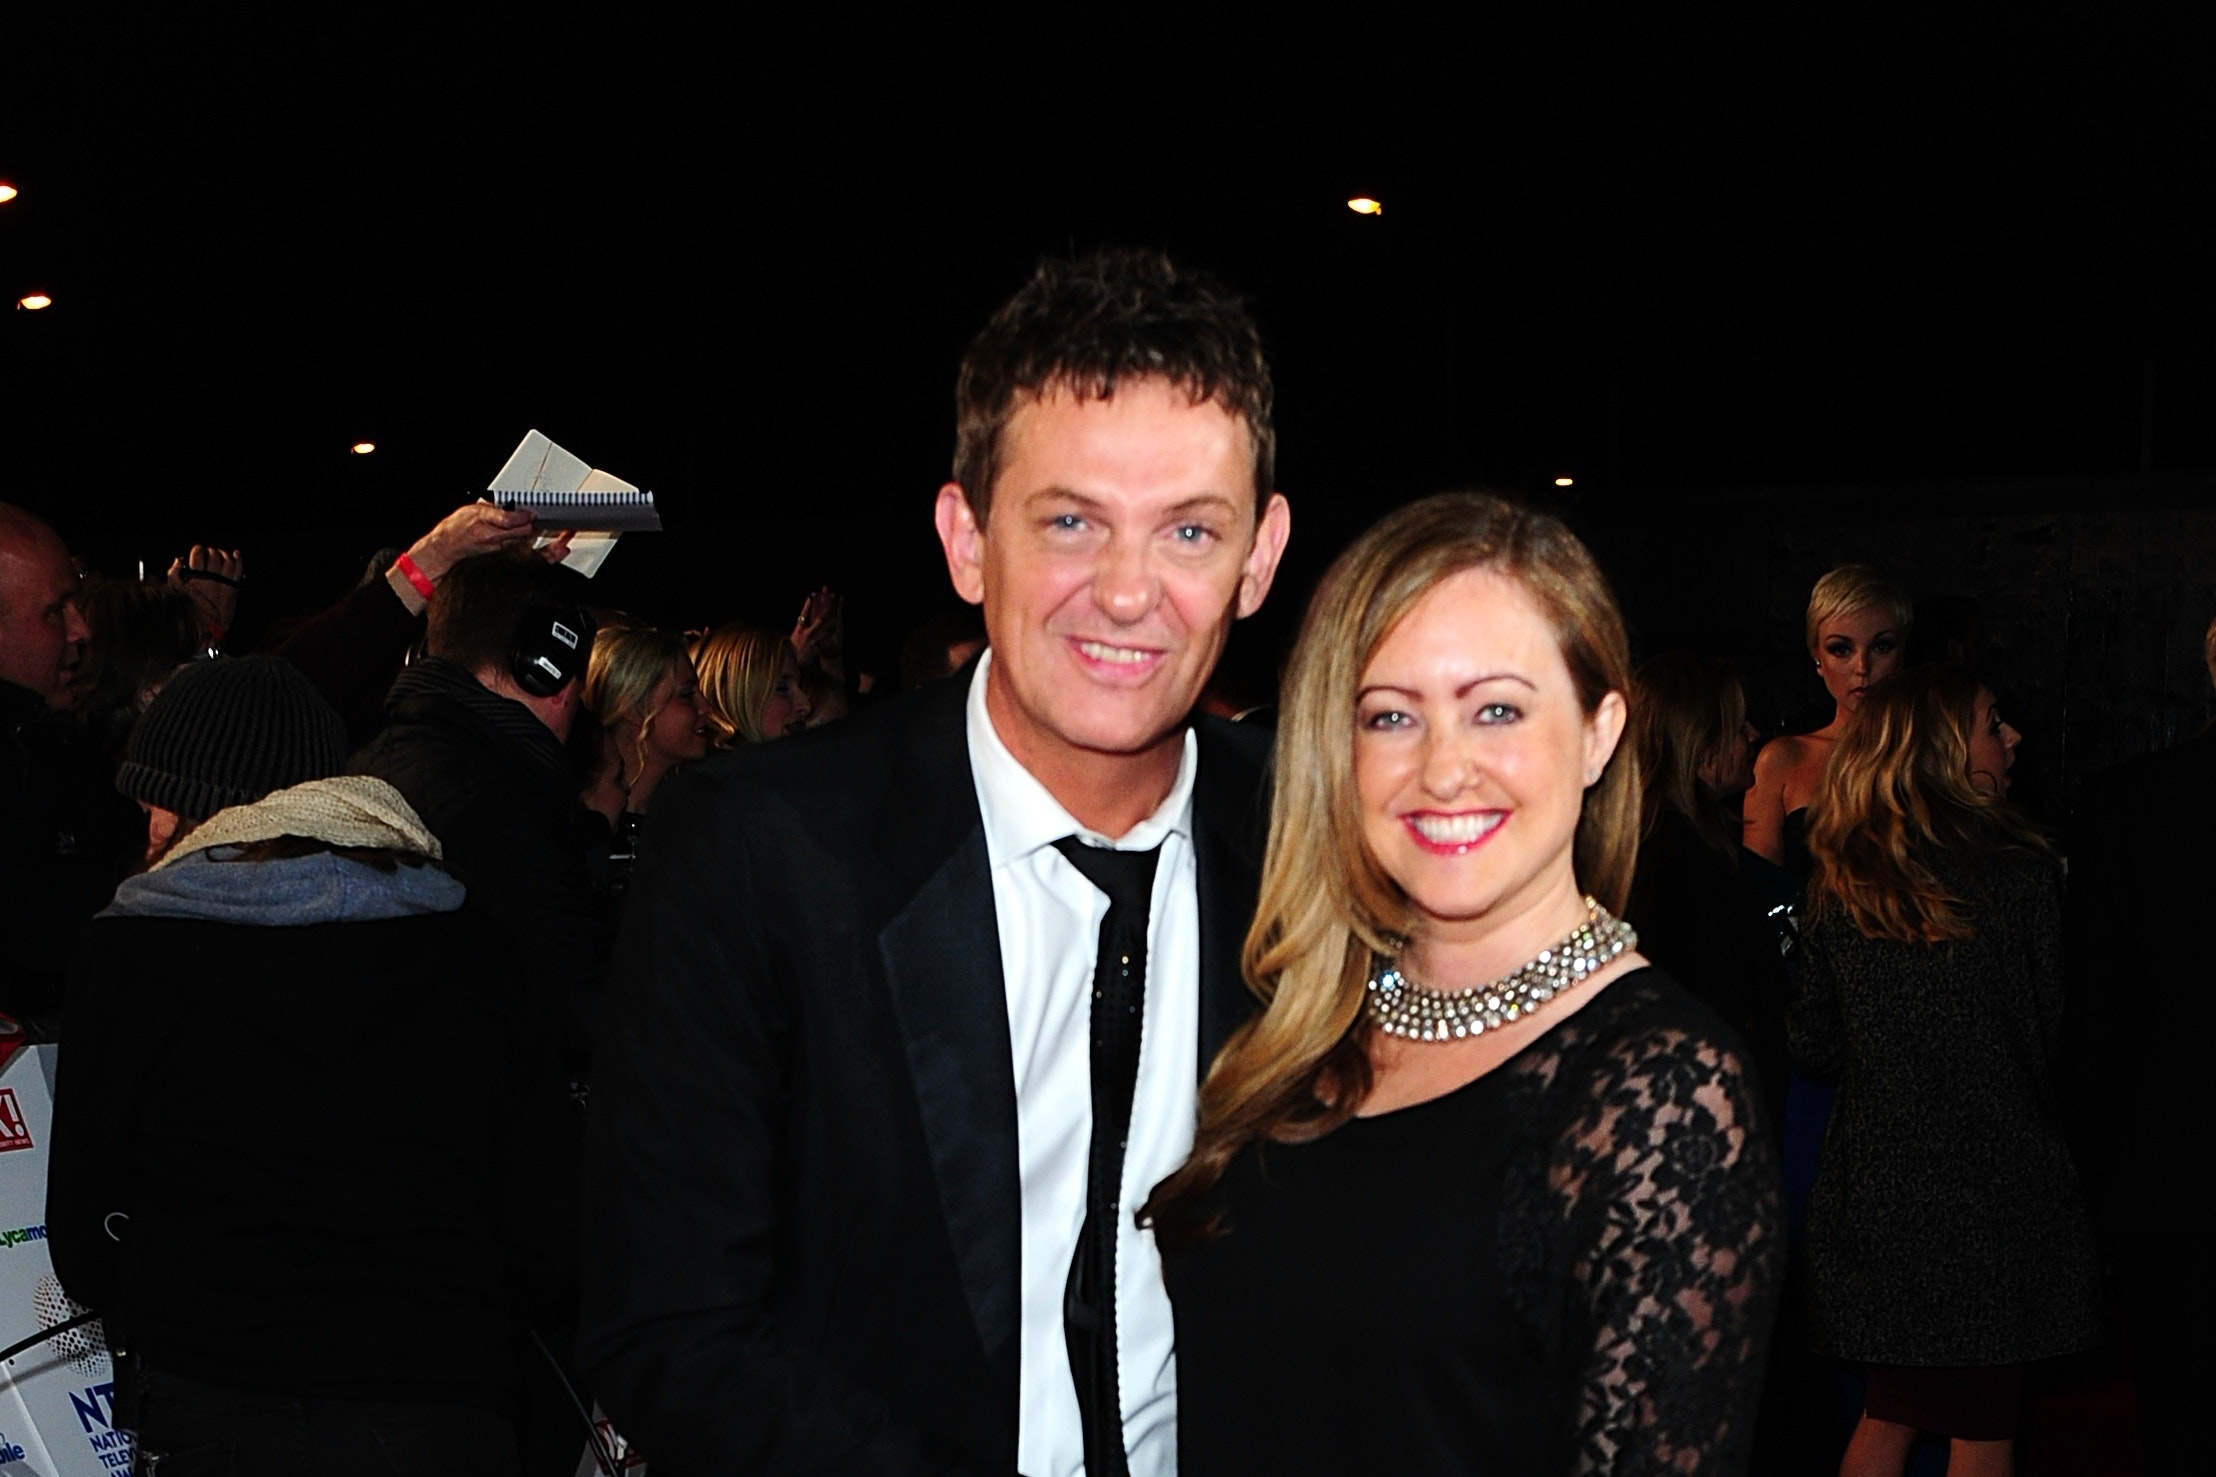 Matthew Wright and his wife Amelia